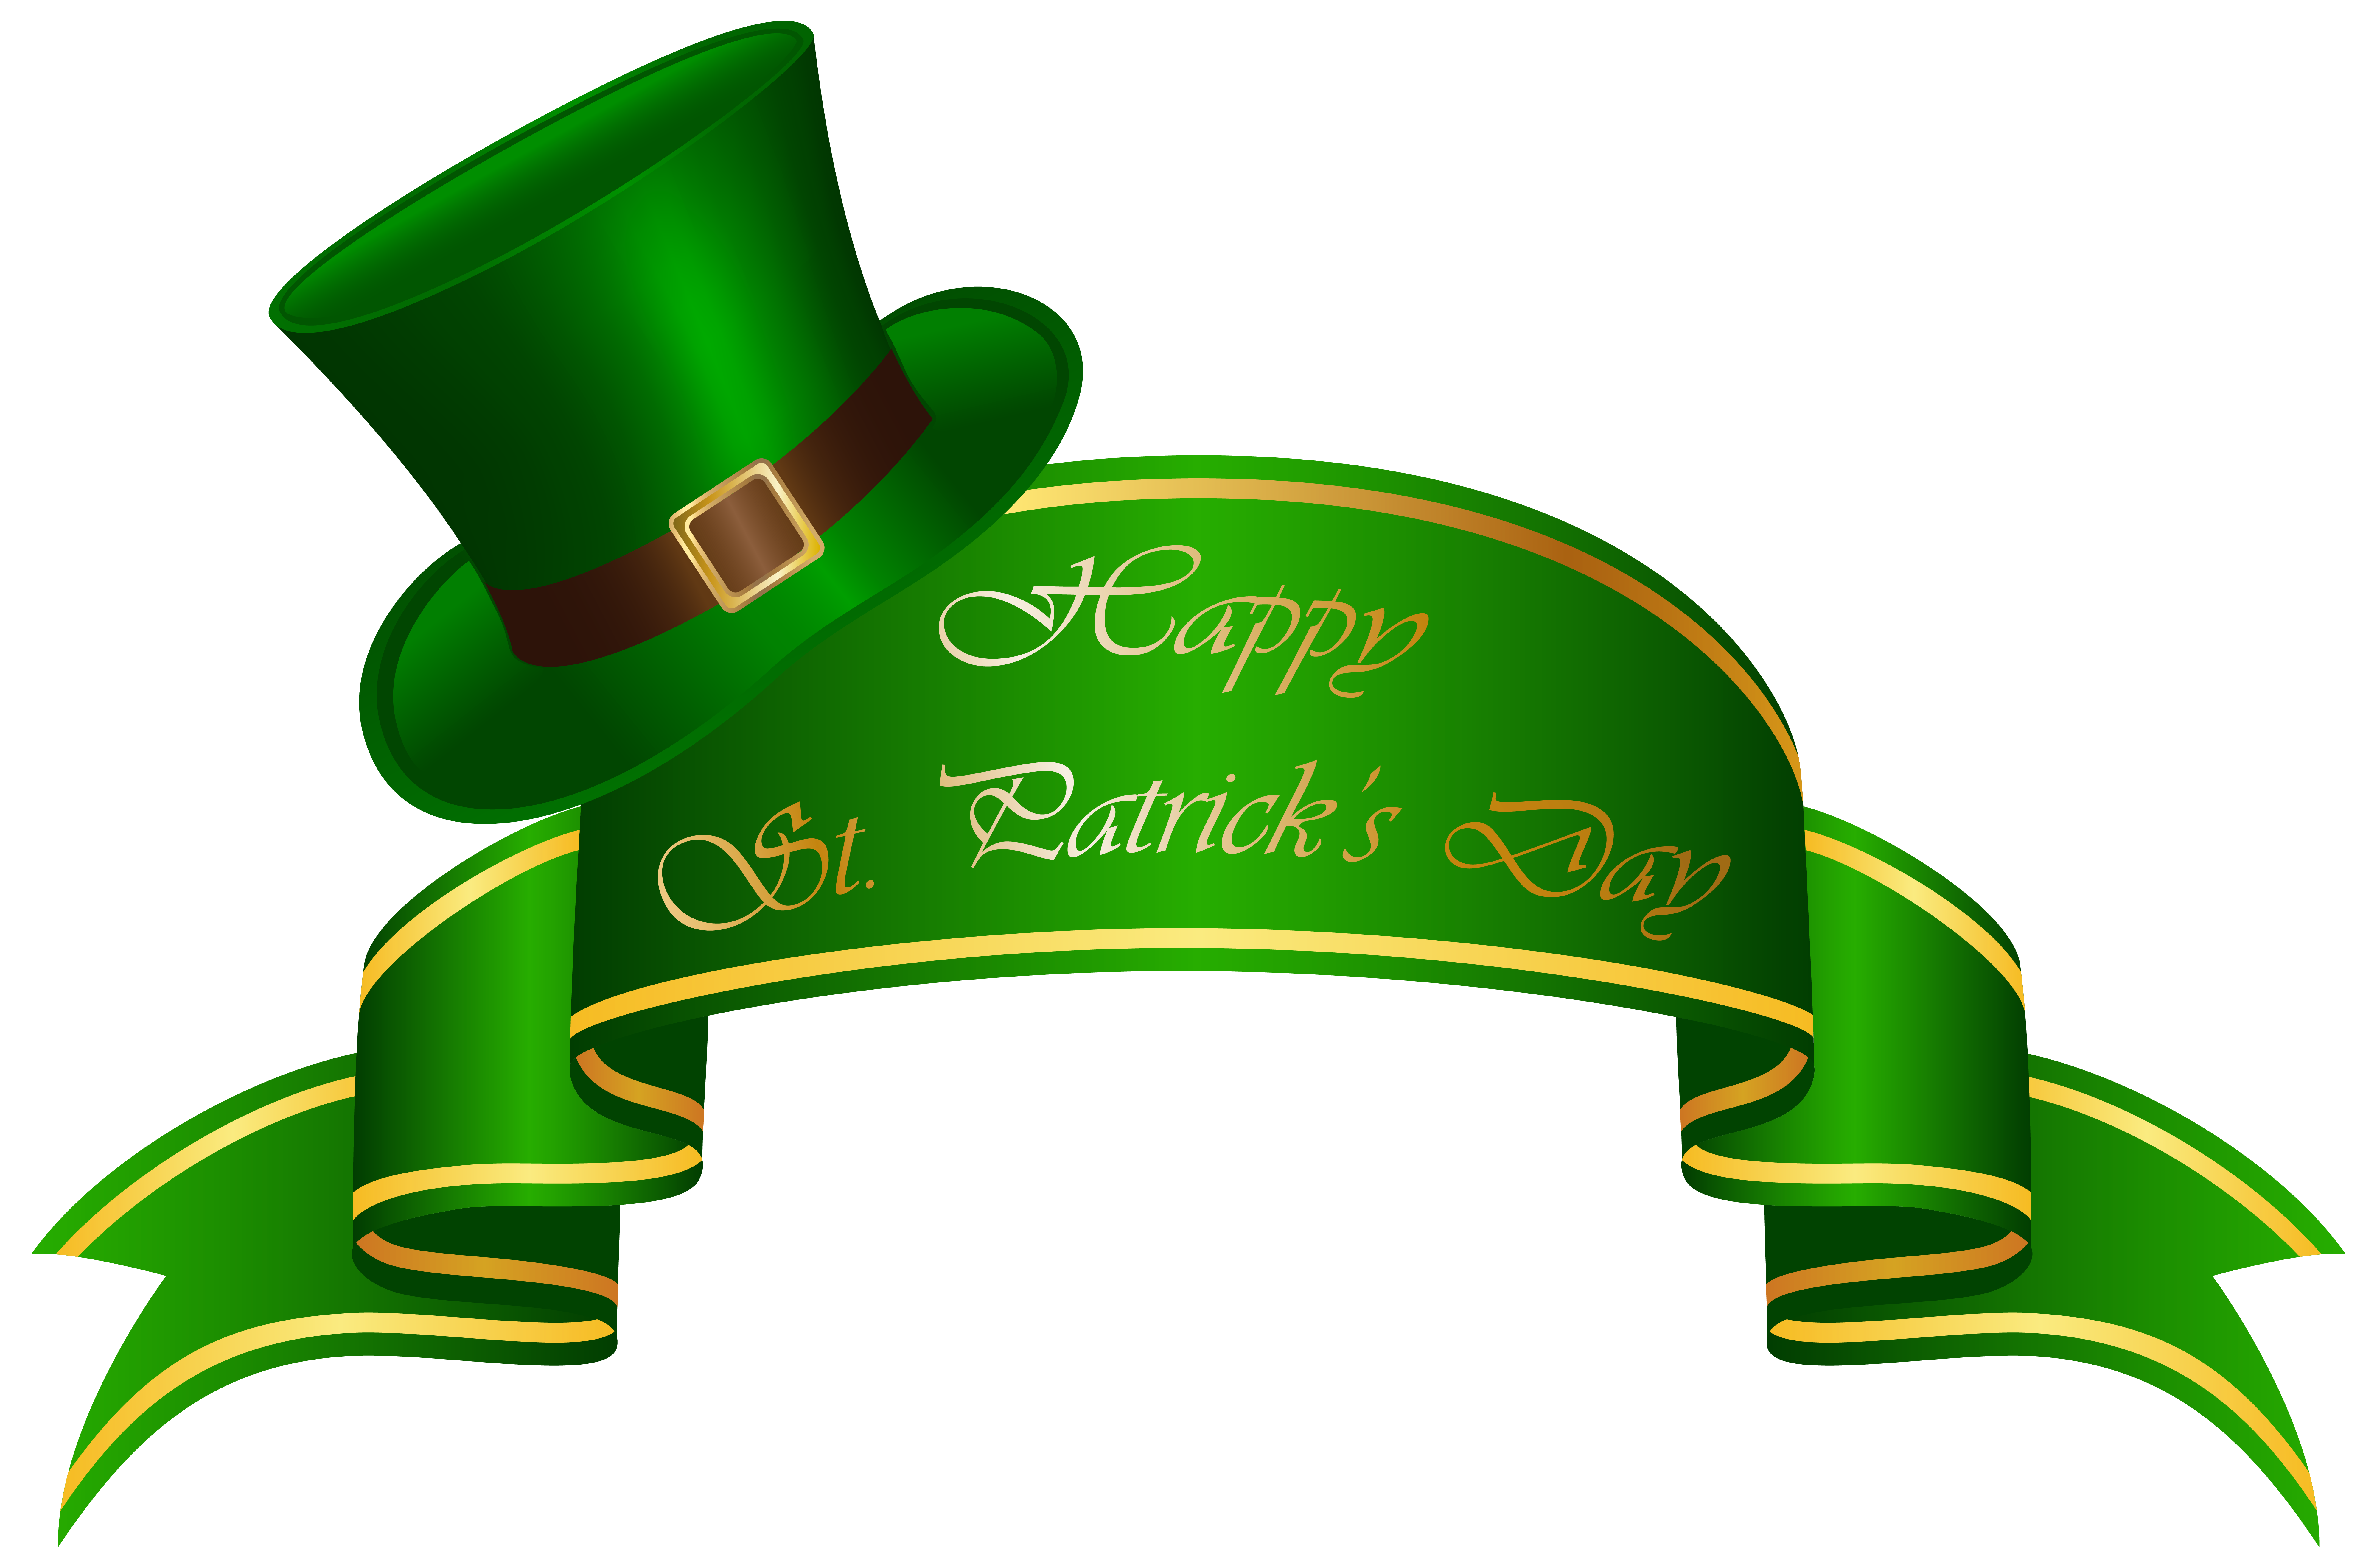 Patricks banner and hat. 2017 clipart st patrick's day